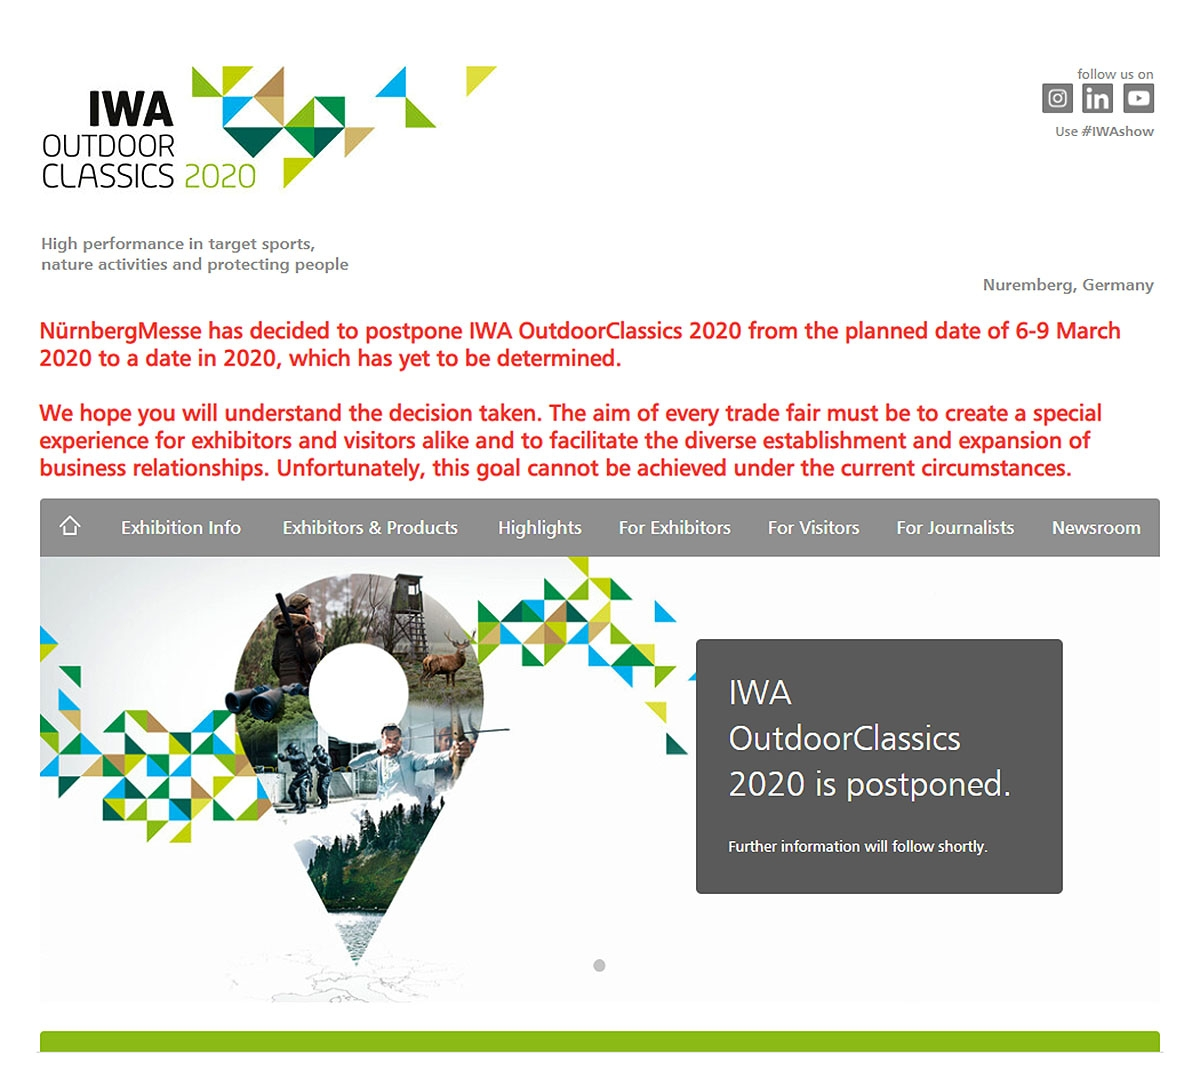 IWA 2020 cancelled, but postponed